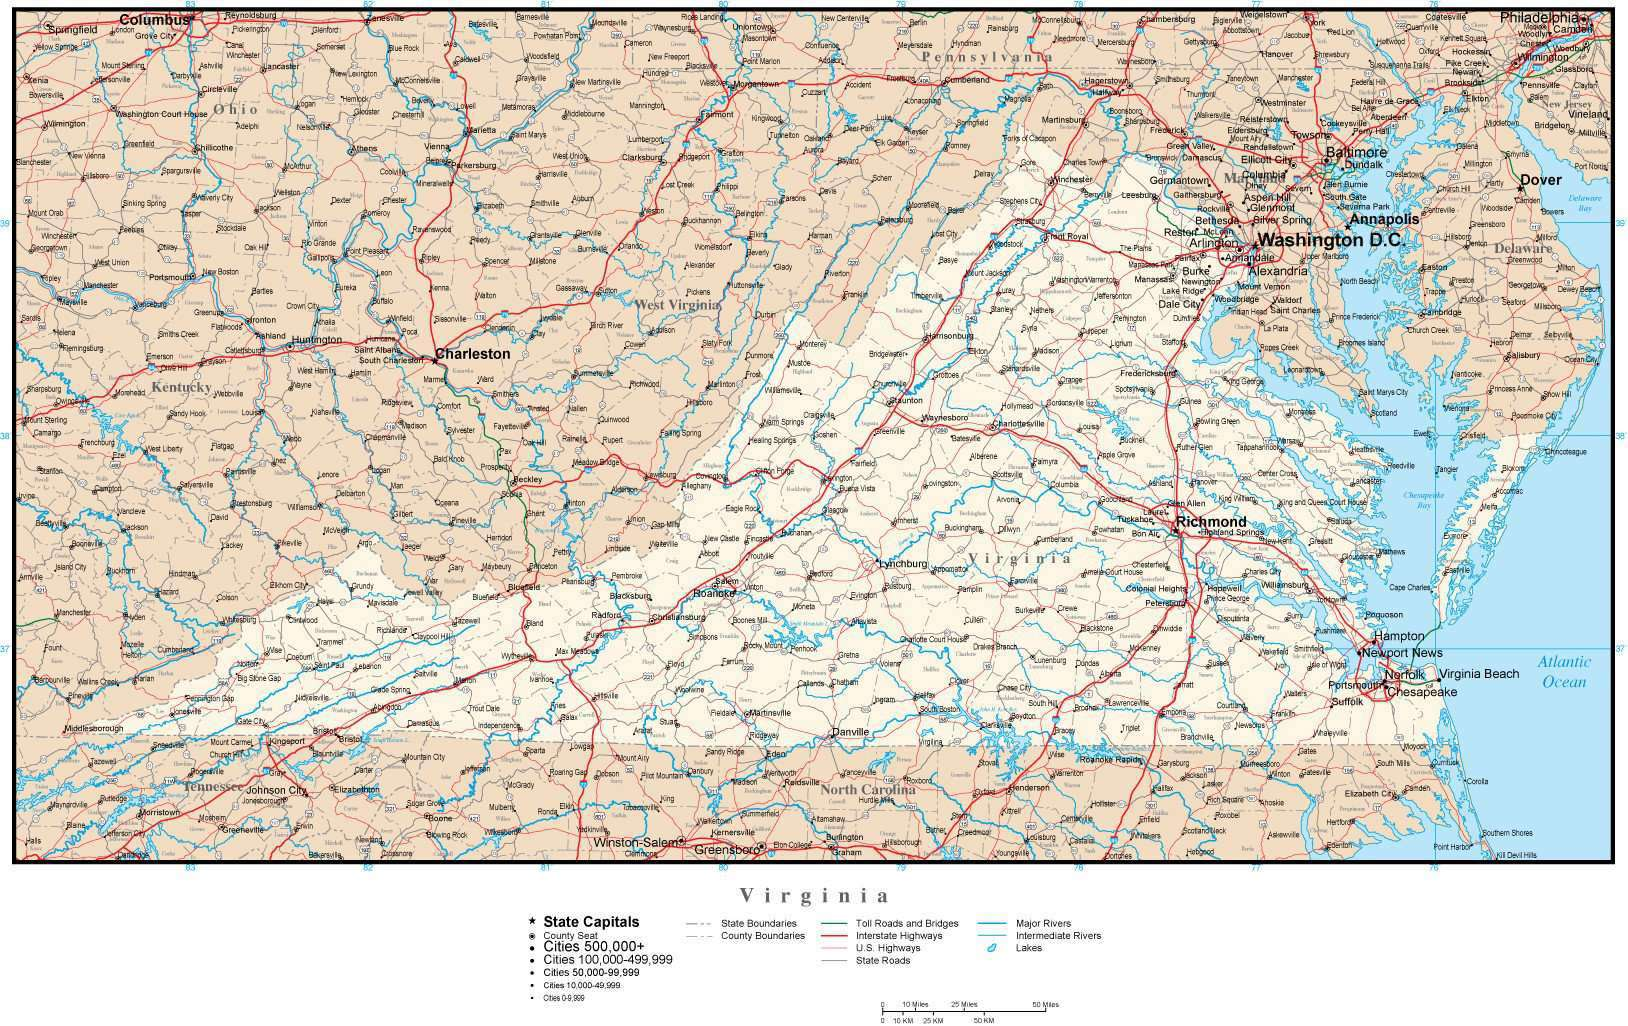 Virginia State Map With Cities And Counties